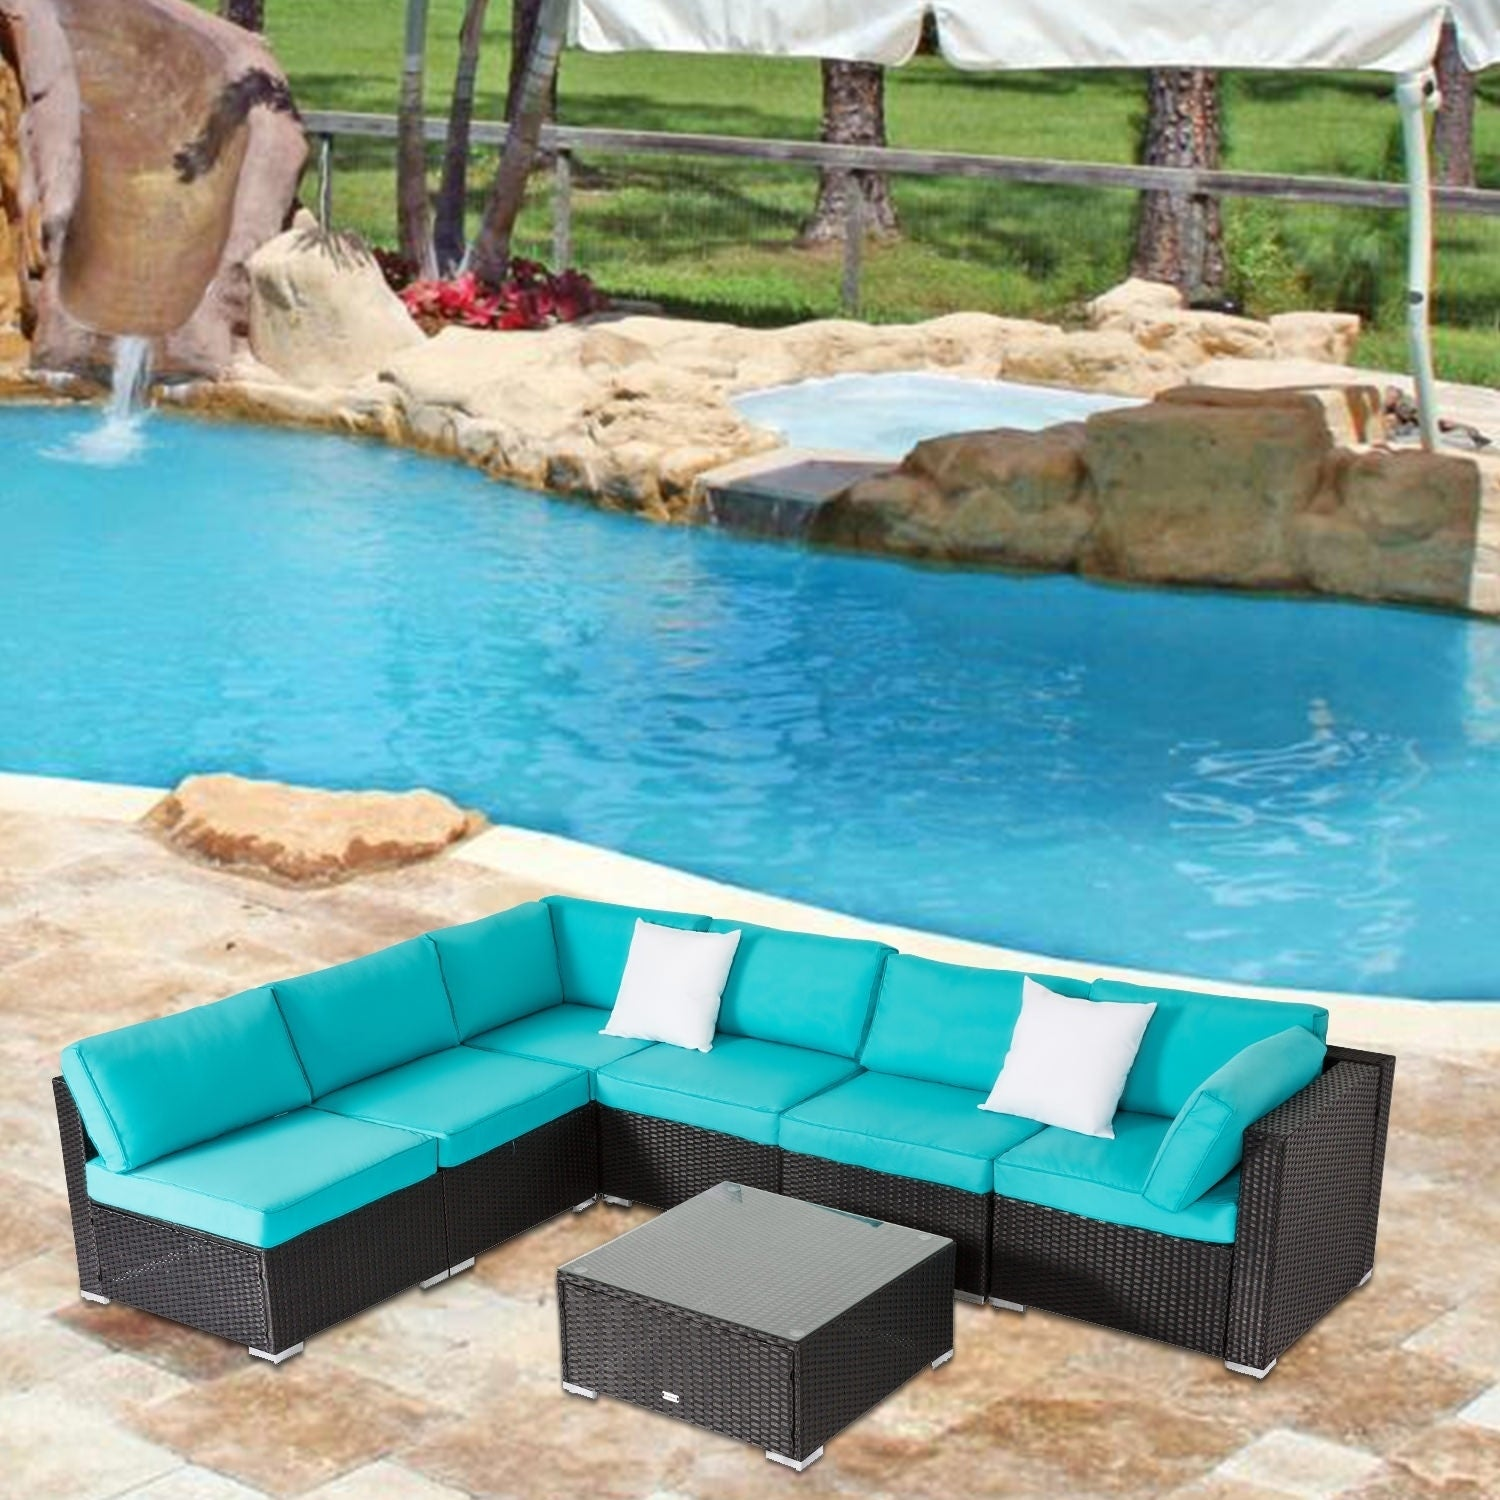 Kinbor 7 Piece All-Weather Wicker Rattan Patio Sectional Sofa Set Patio with Cushioned